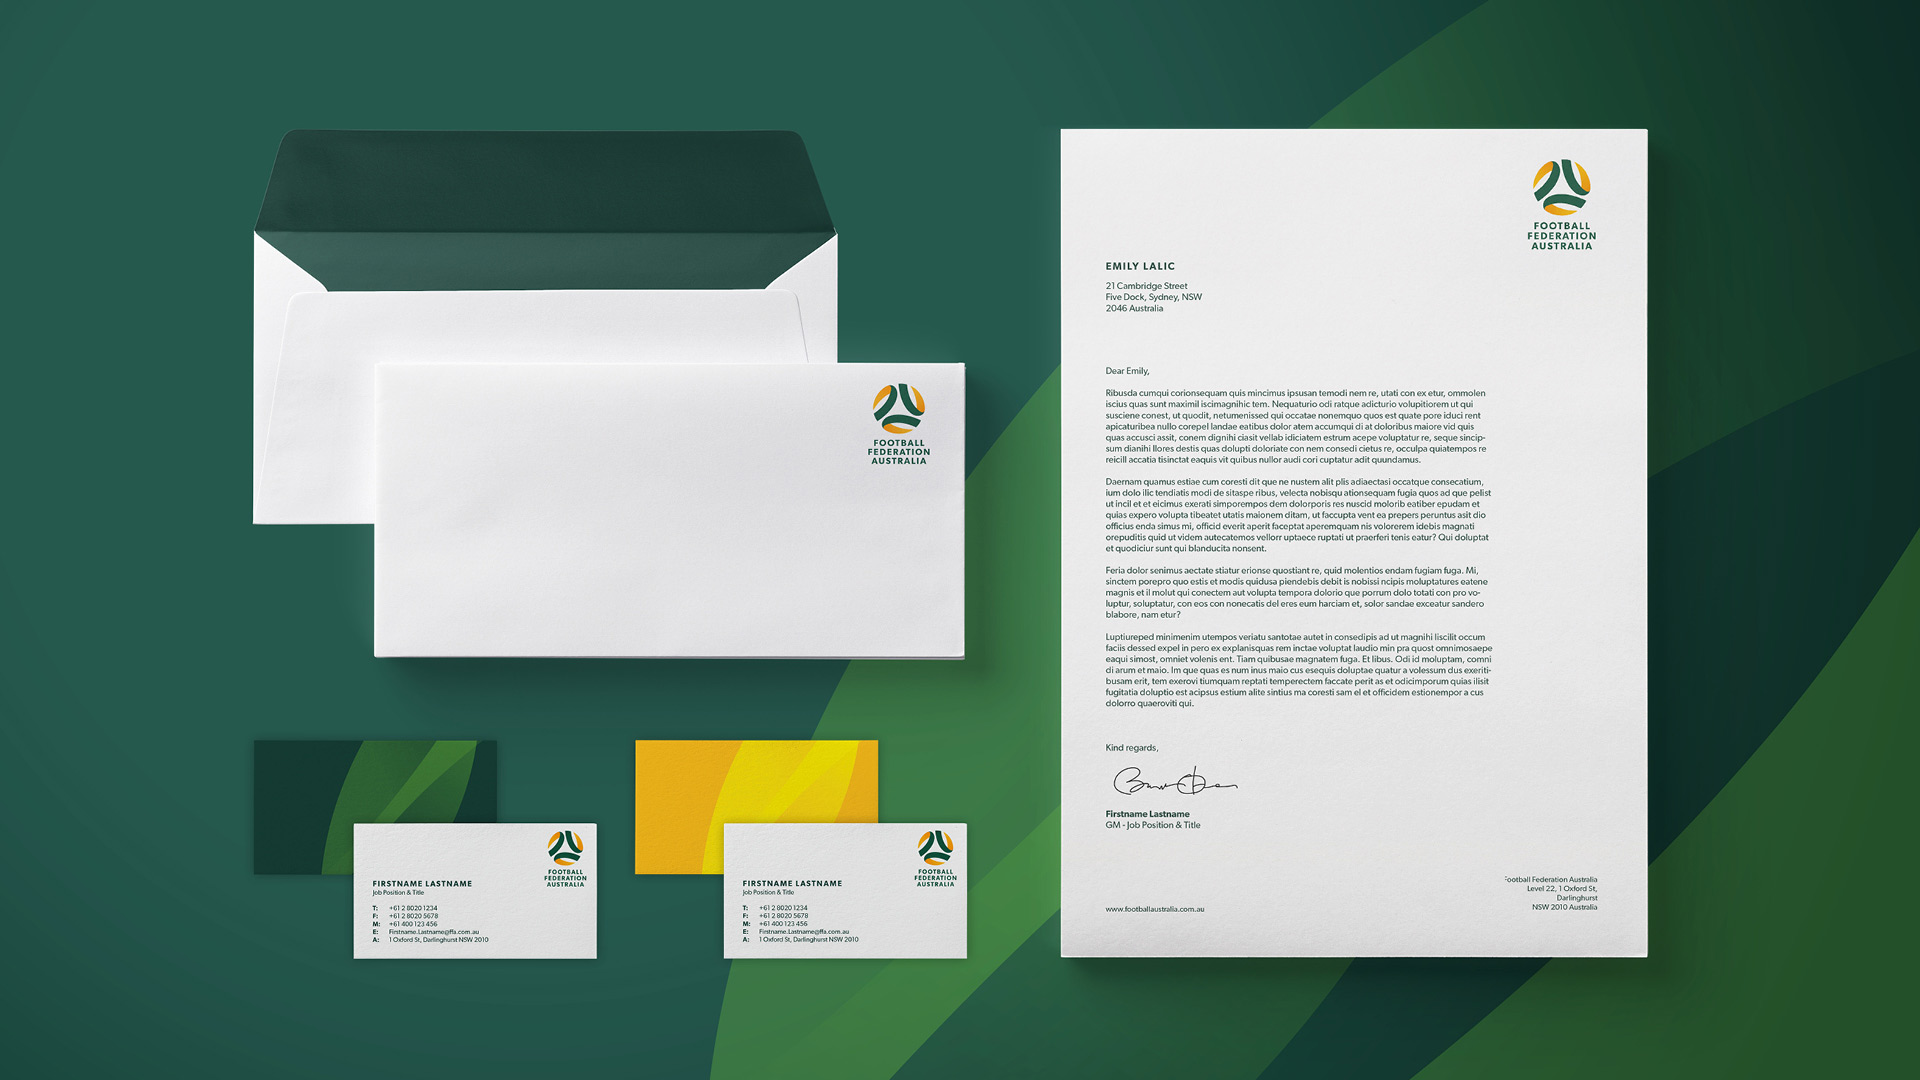 New Football Federation Australia stationery